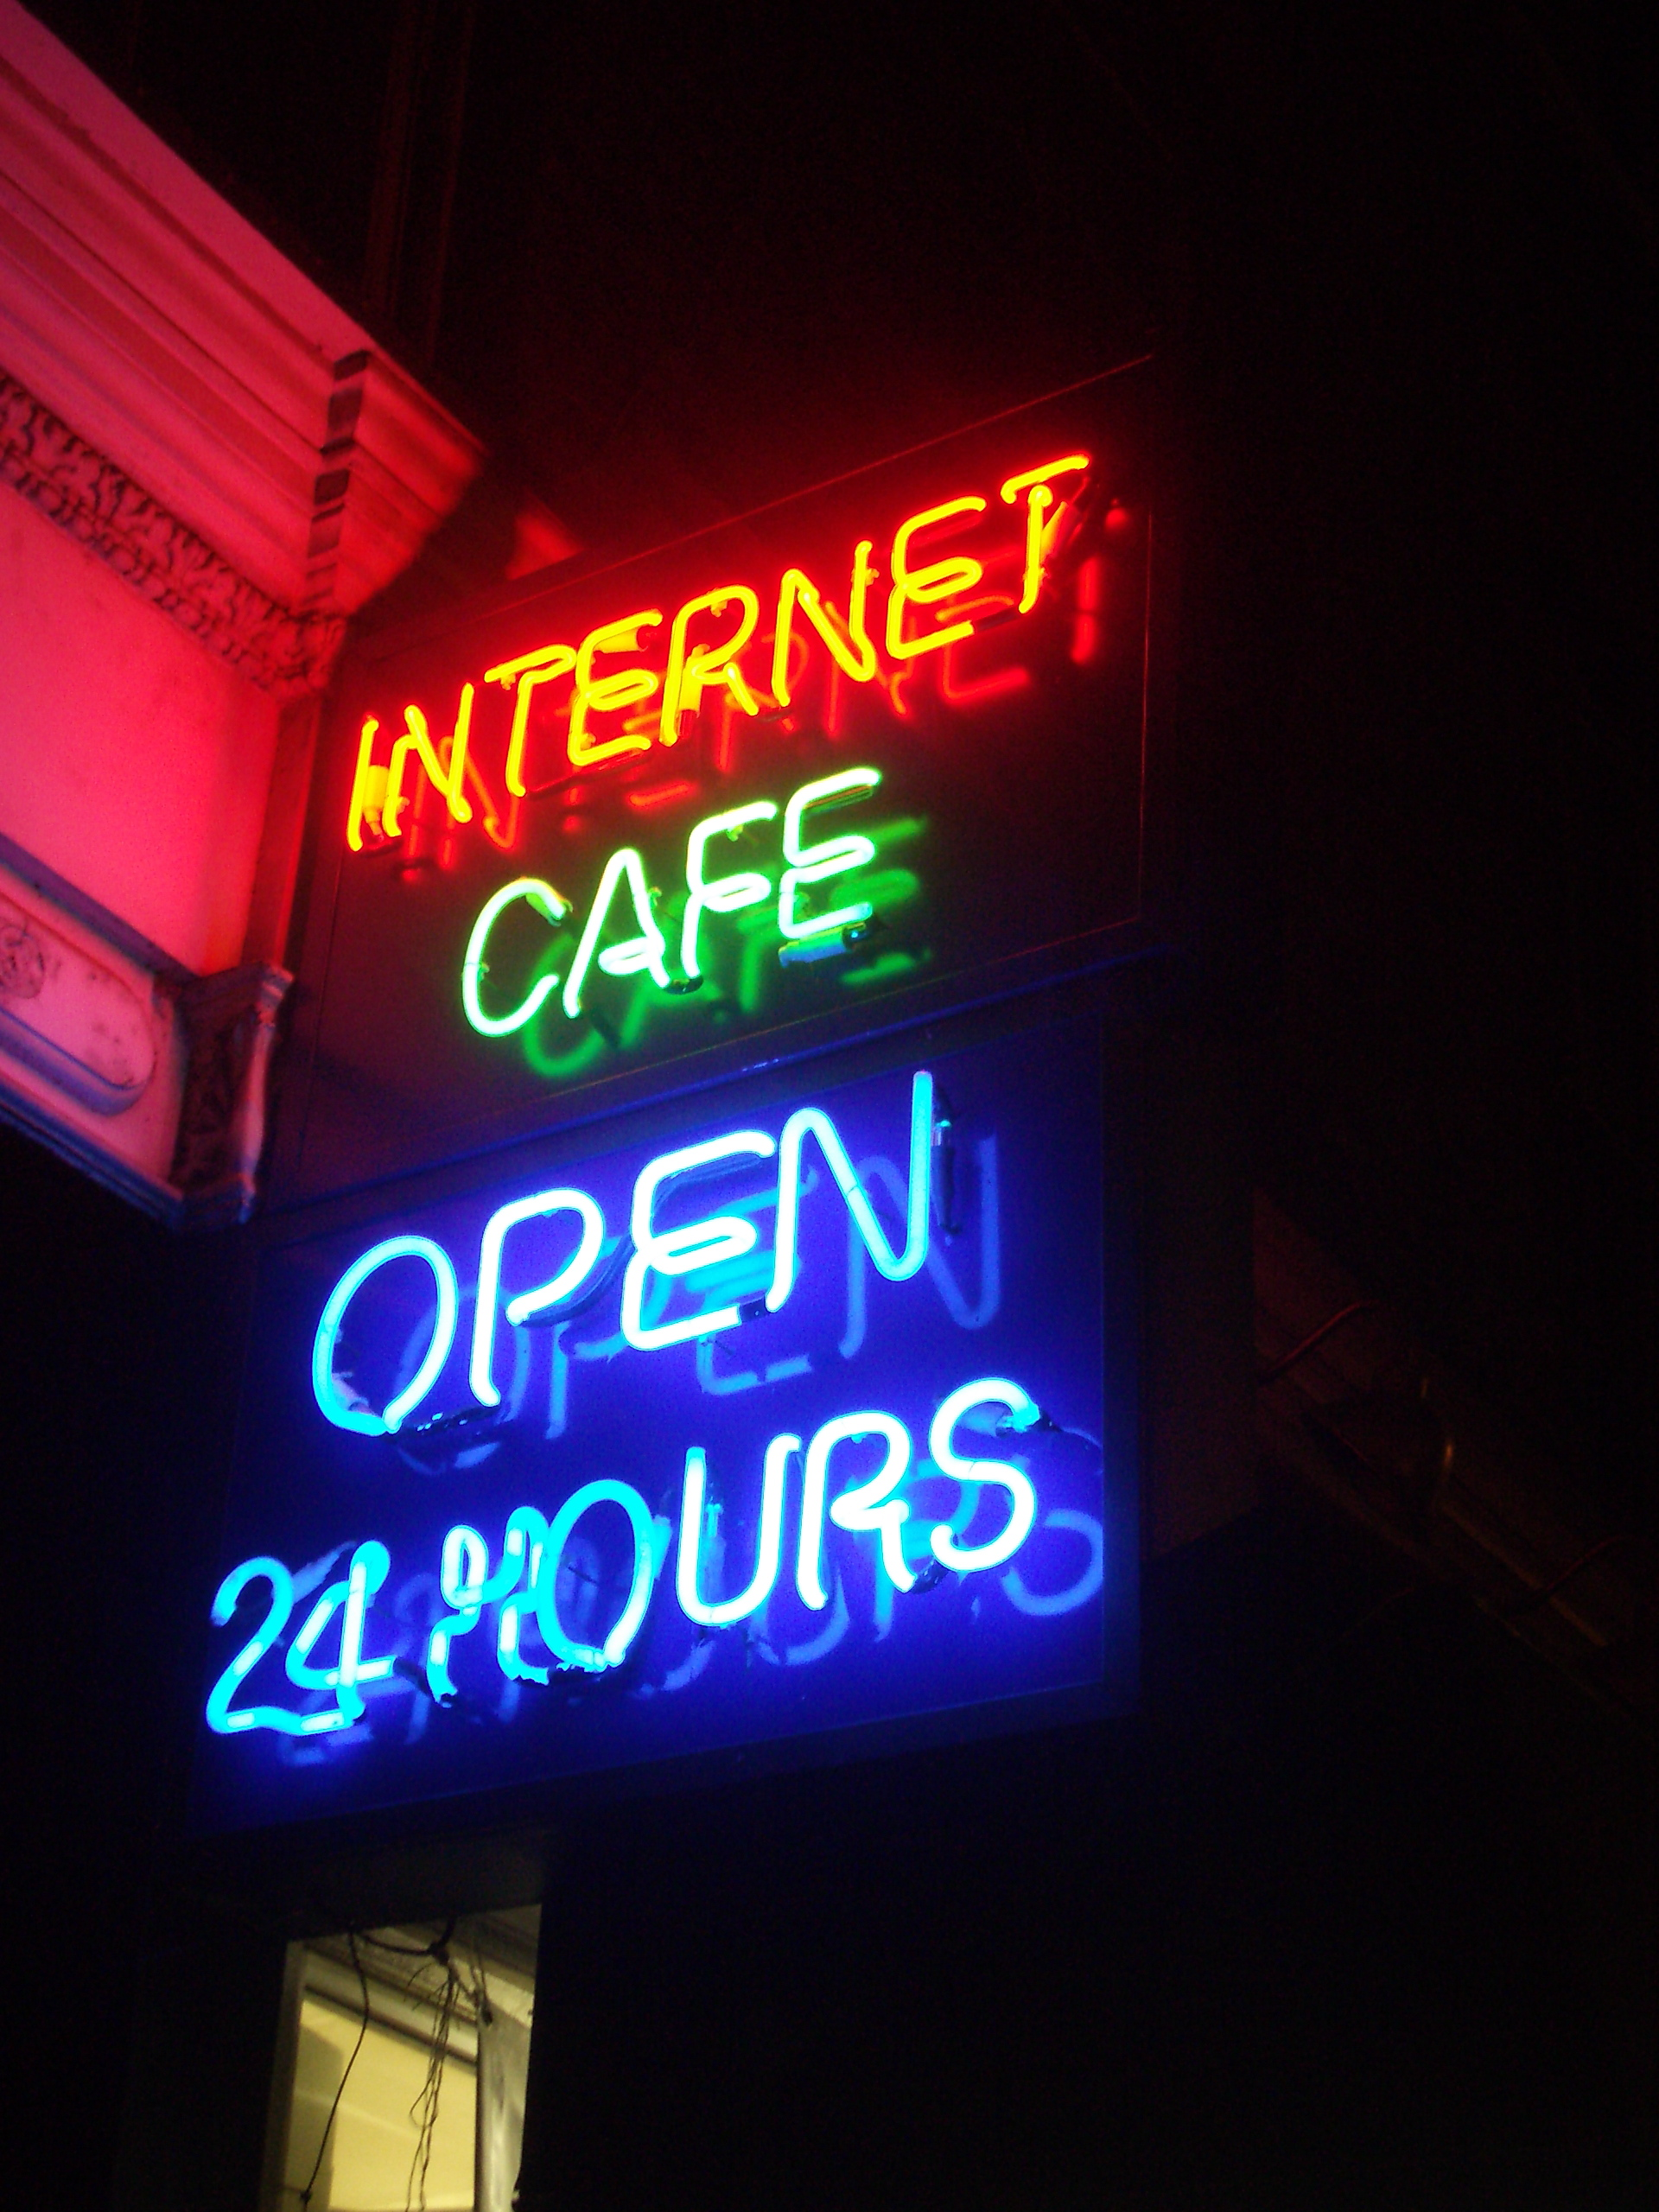 24 Internet File Neon Internet Cafe Open 24 Hours Jpg Wikimedia Commons